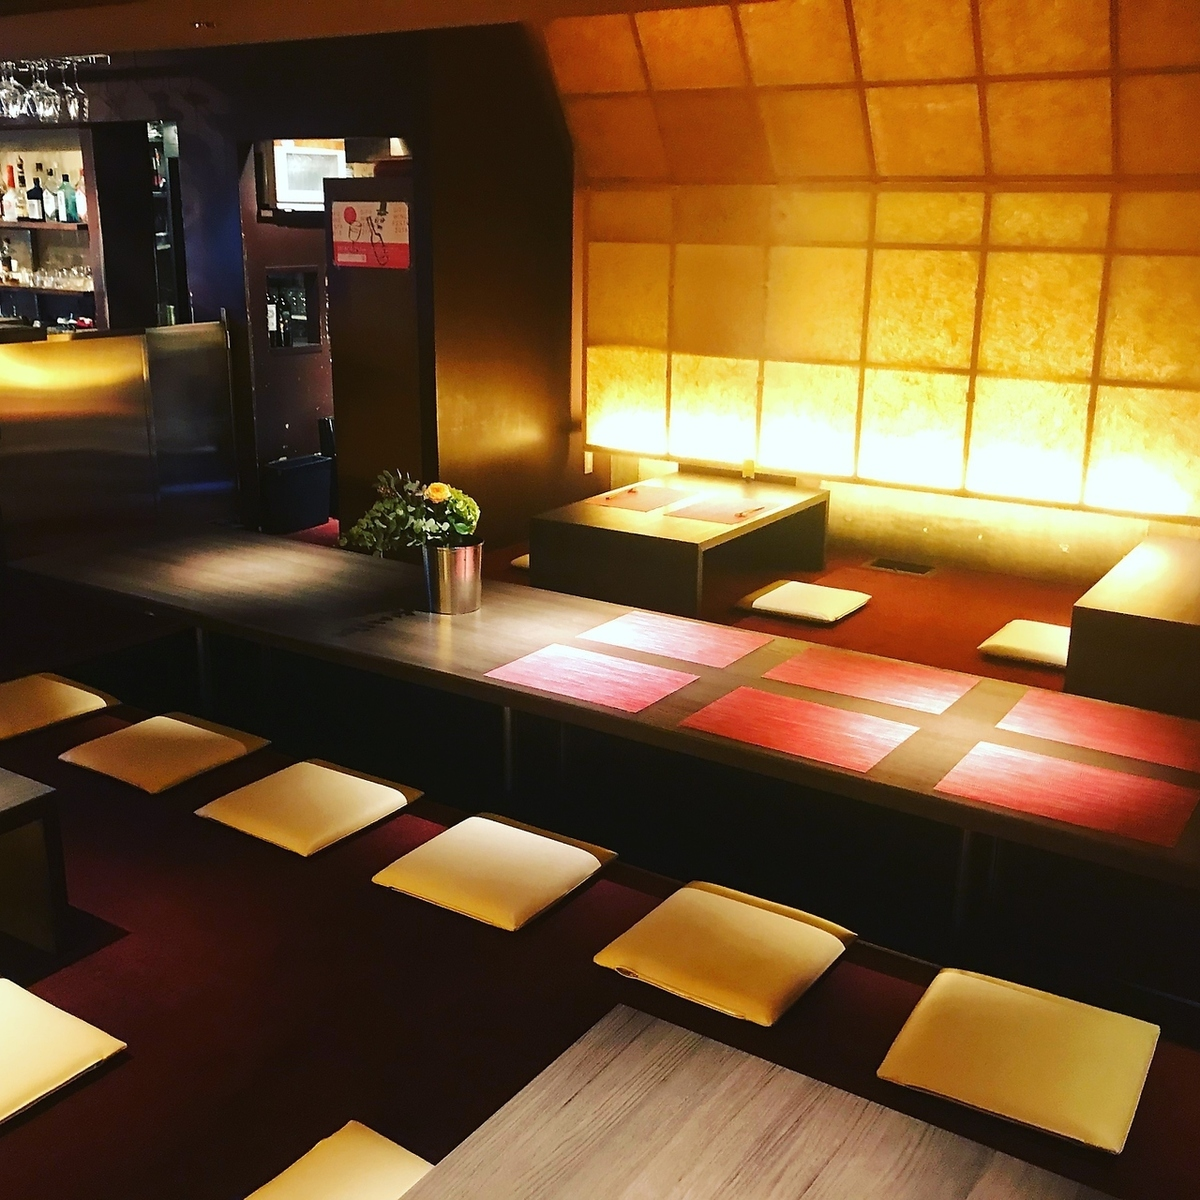 Excellent atmosphere! Space where you can dine calmly!